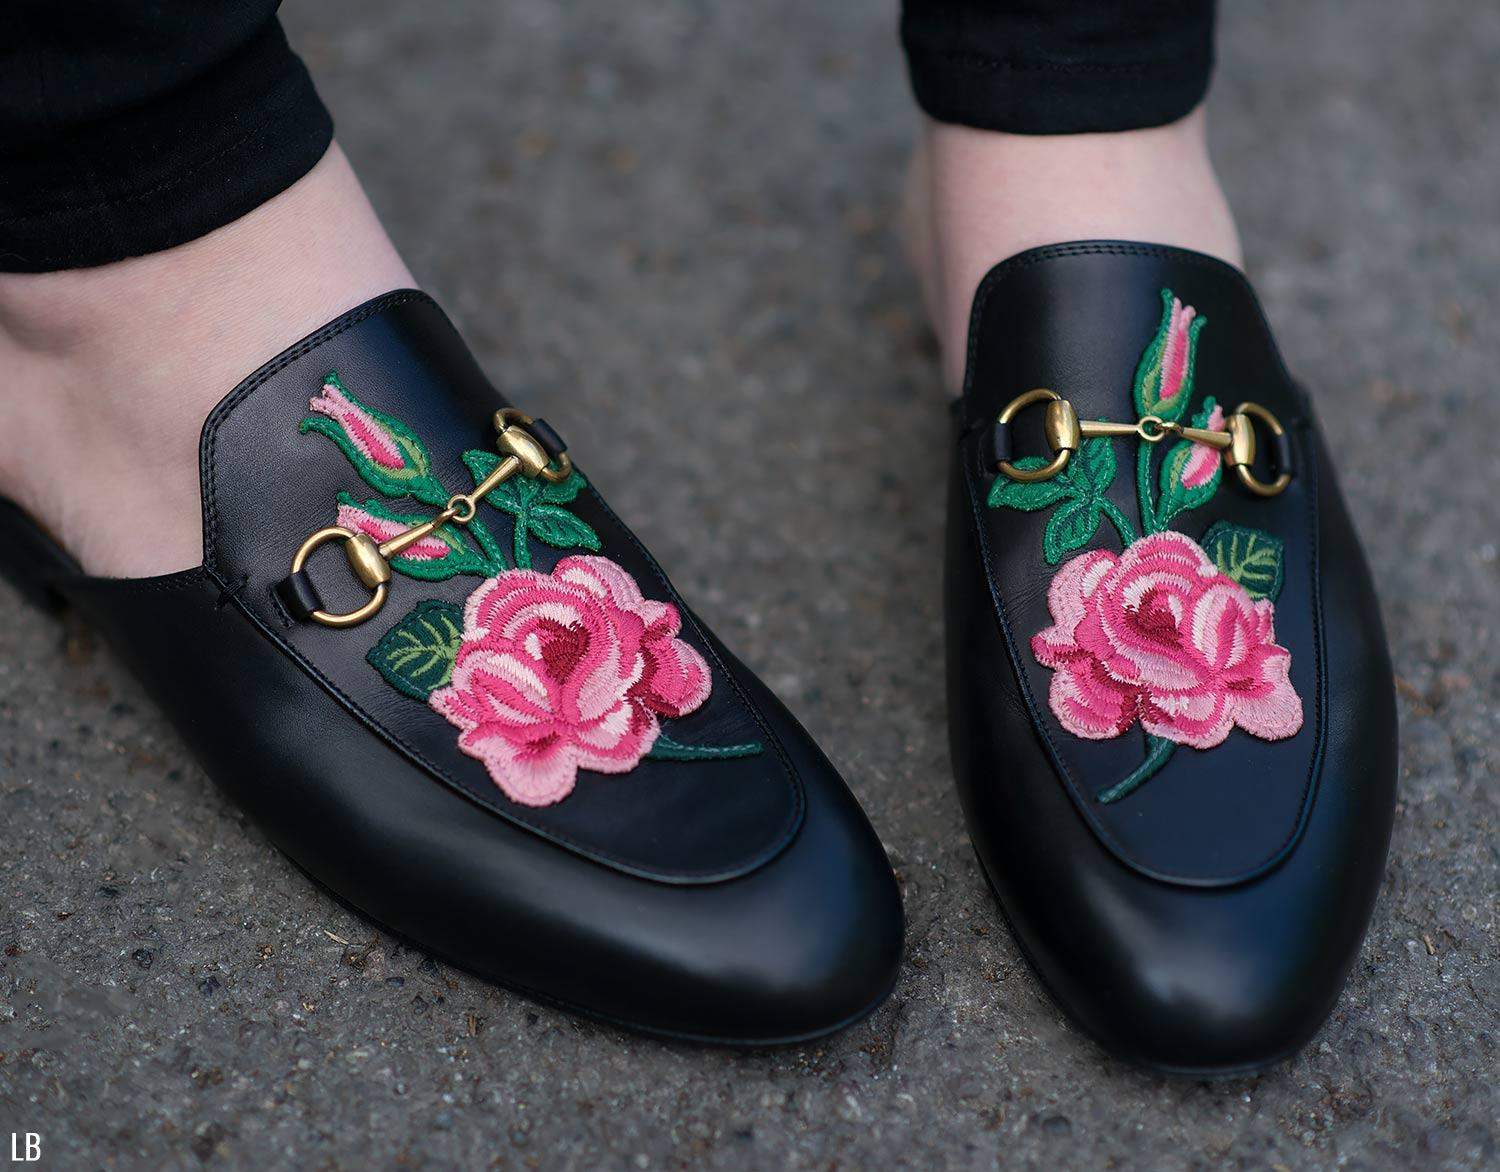 170e41121e5ac My New Gucci Princetown Floral Embroidered Loafers Review ...